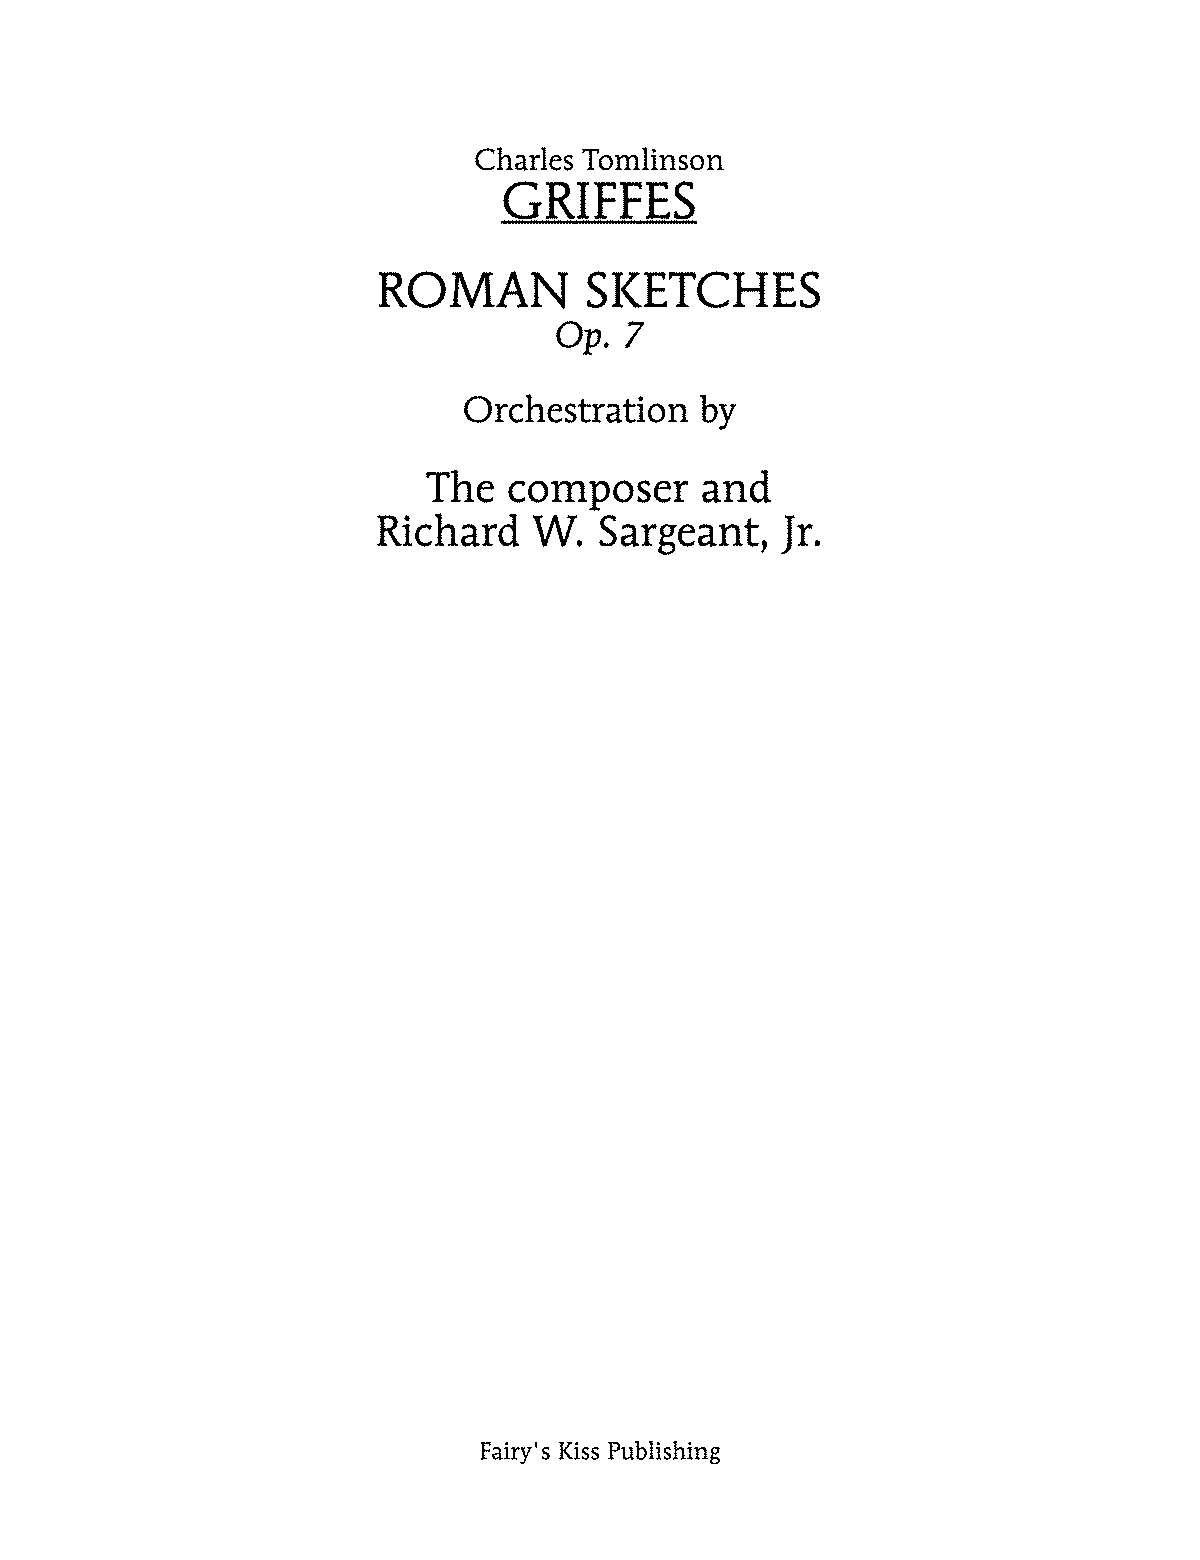 PMLP04597-Roman sketches - Full Score.pdf